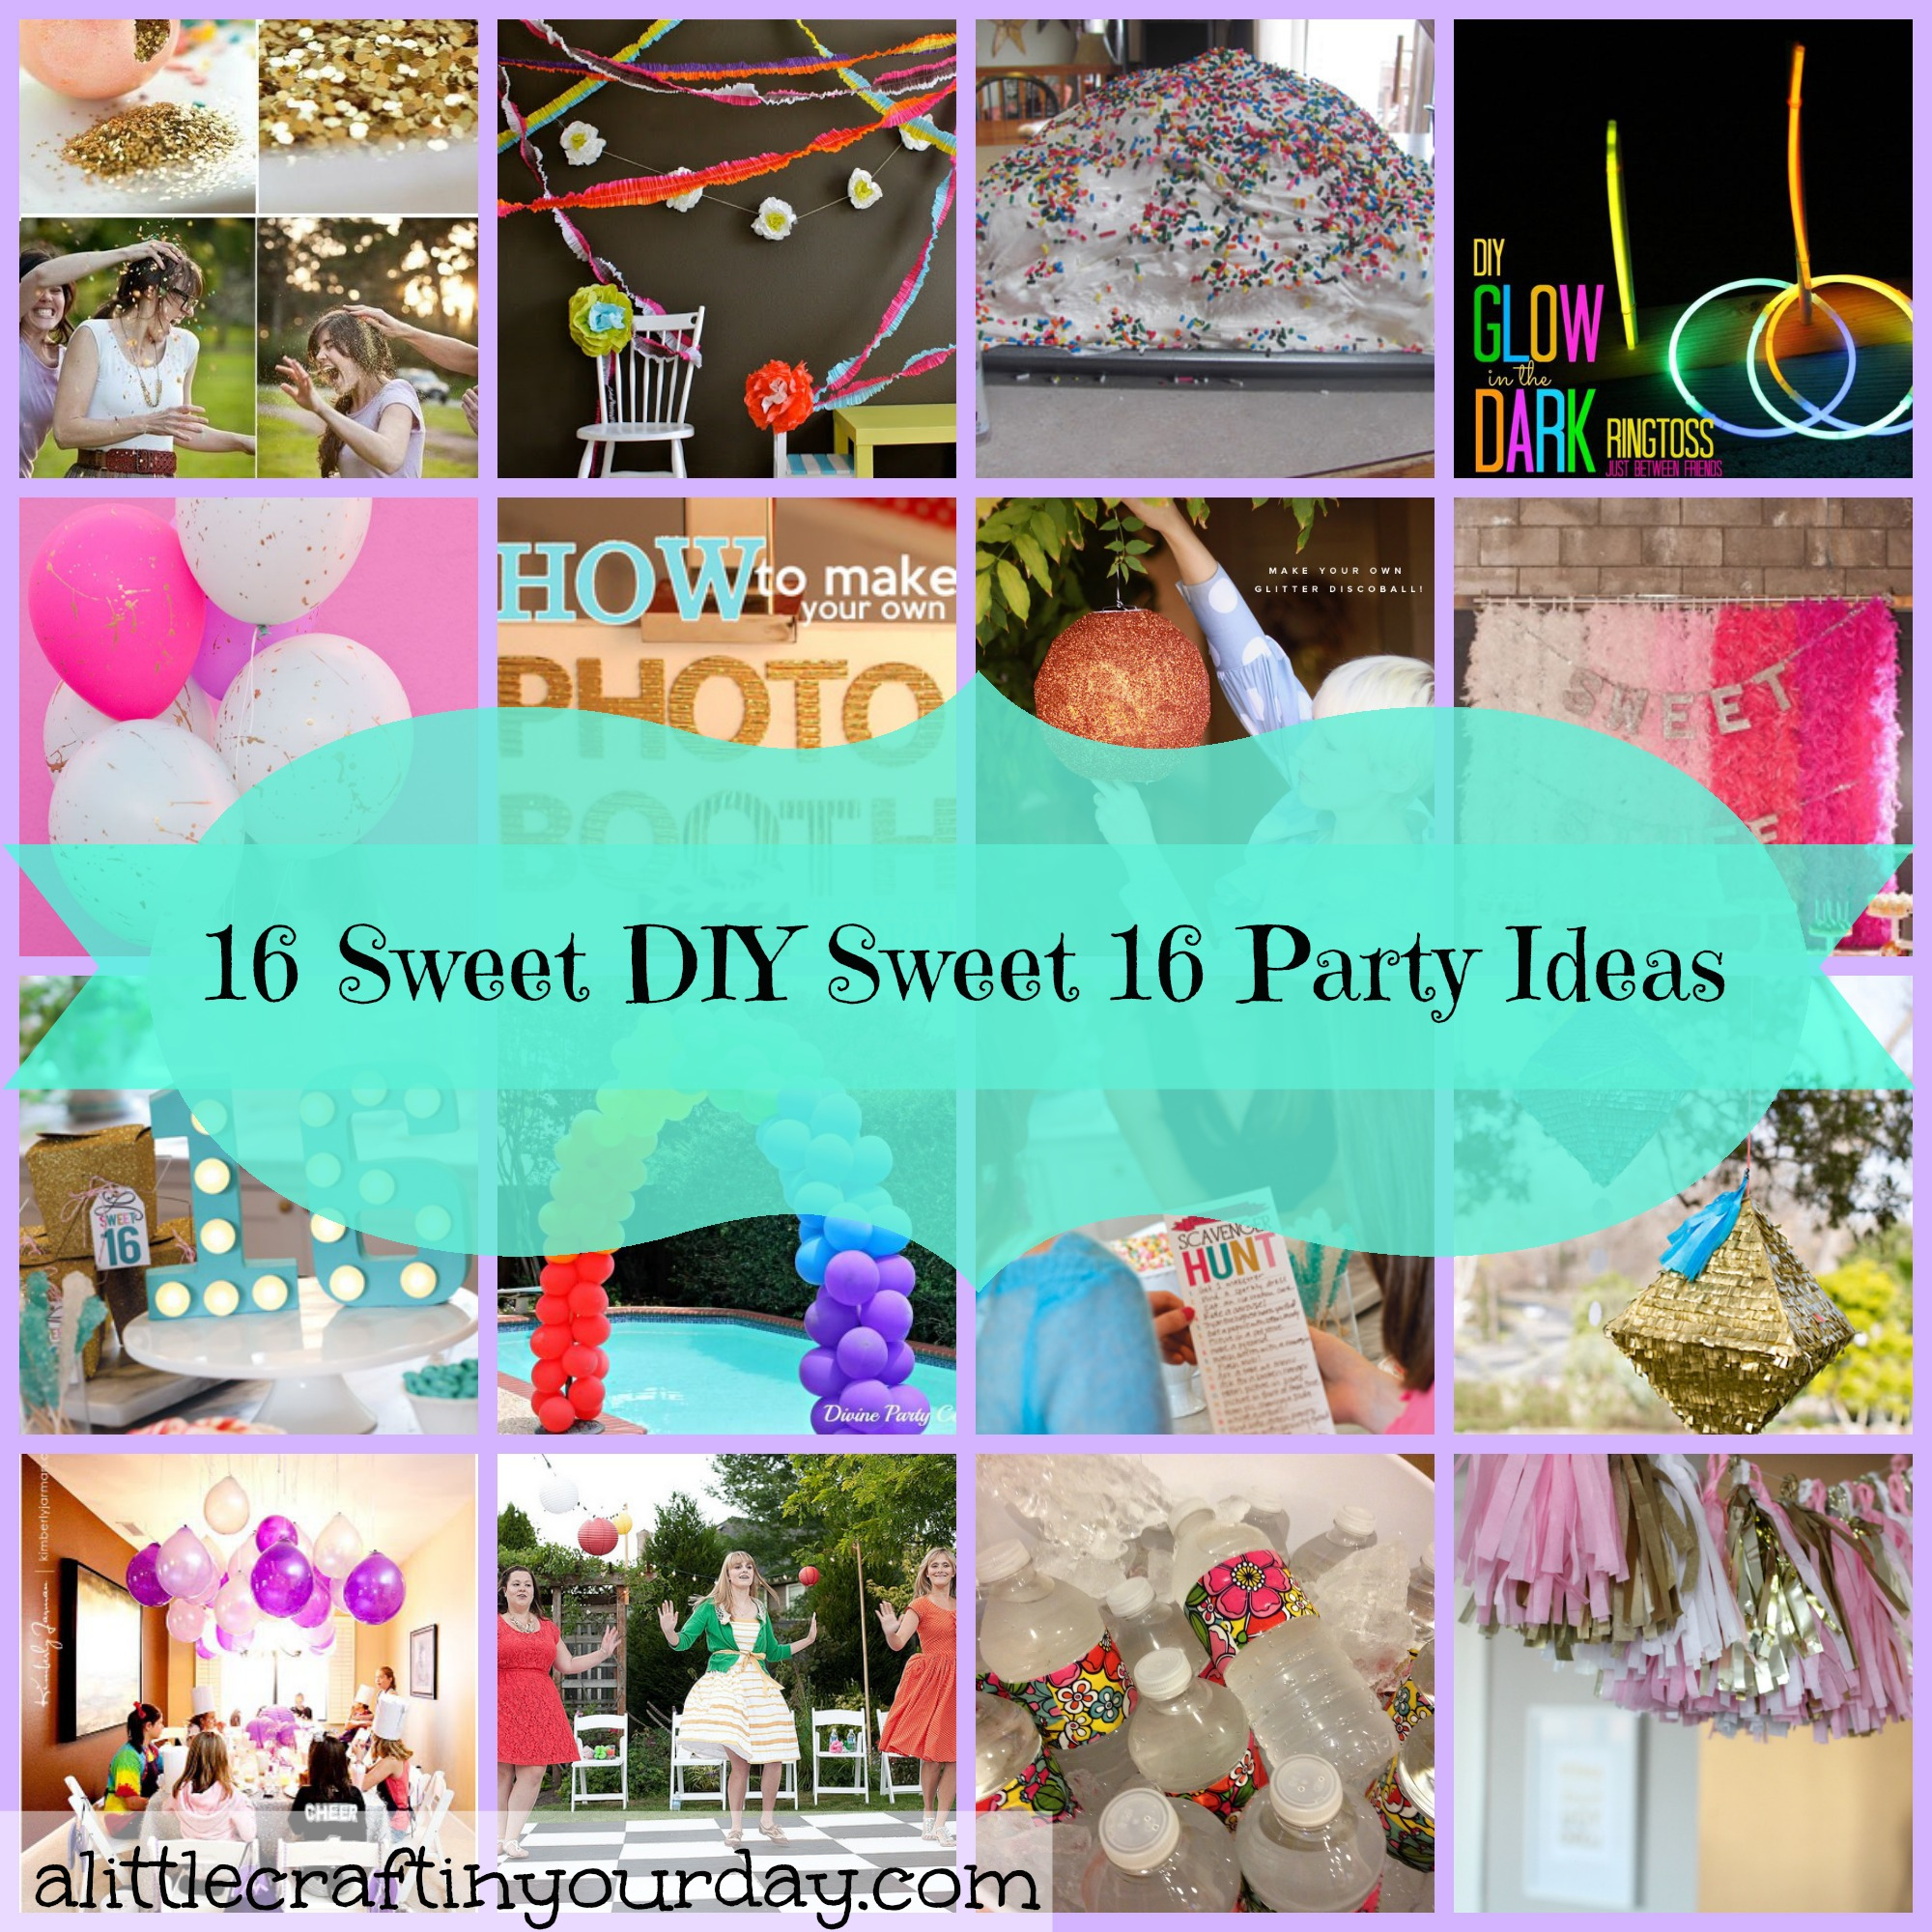 16_Sweet_DIY_Sweet_16_Party_Ideas